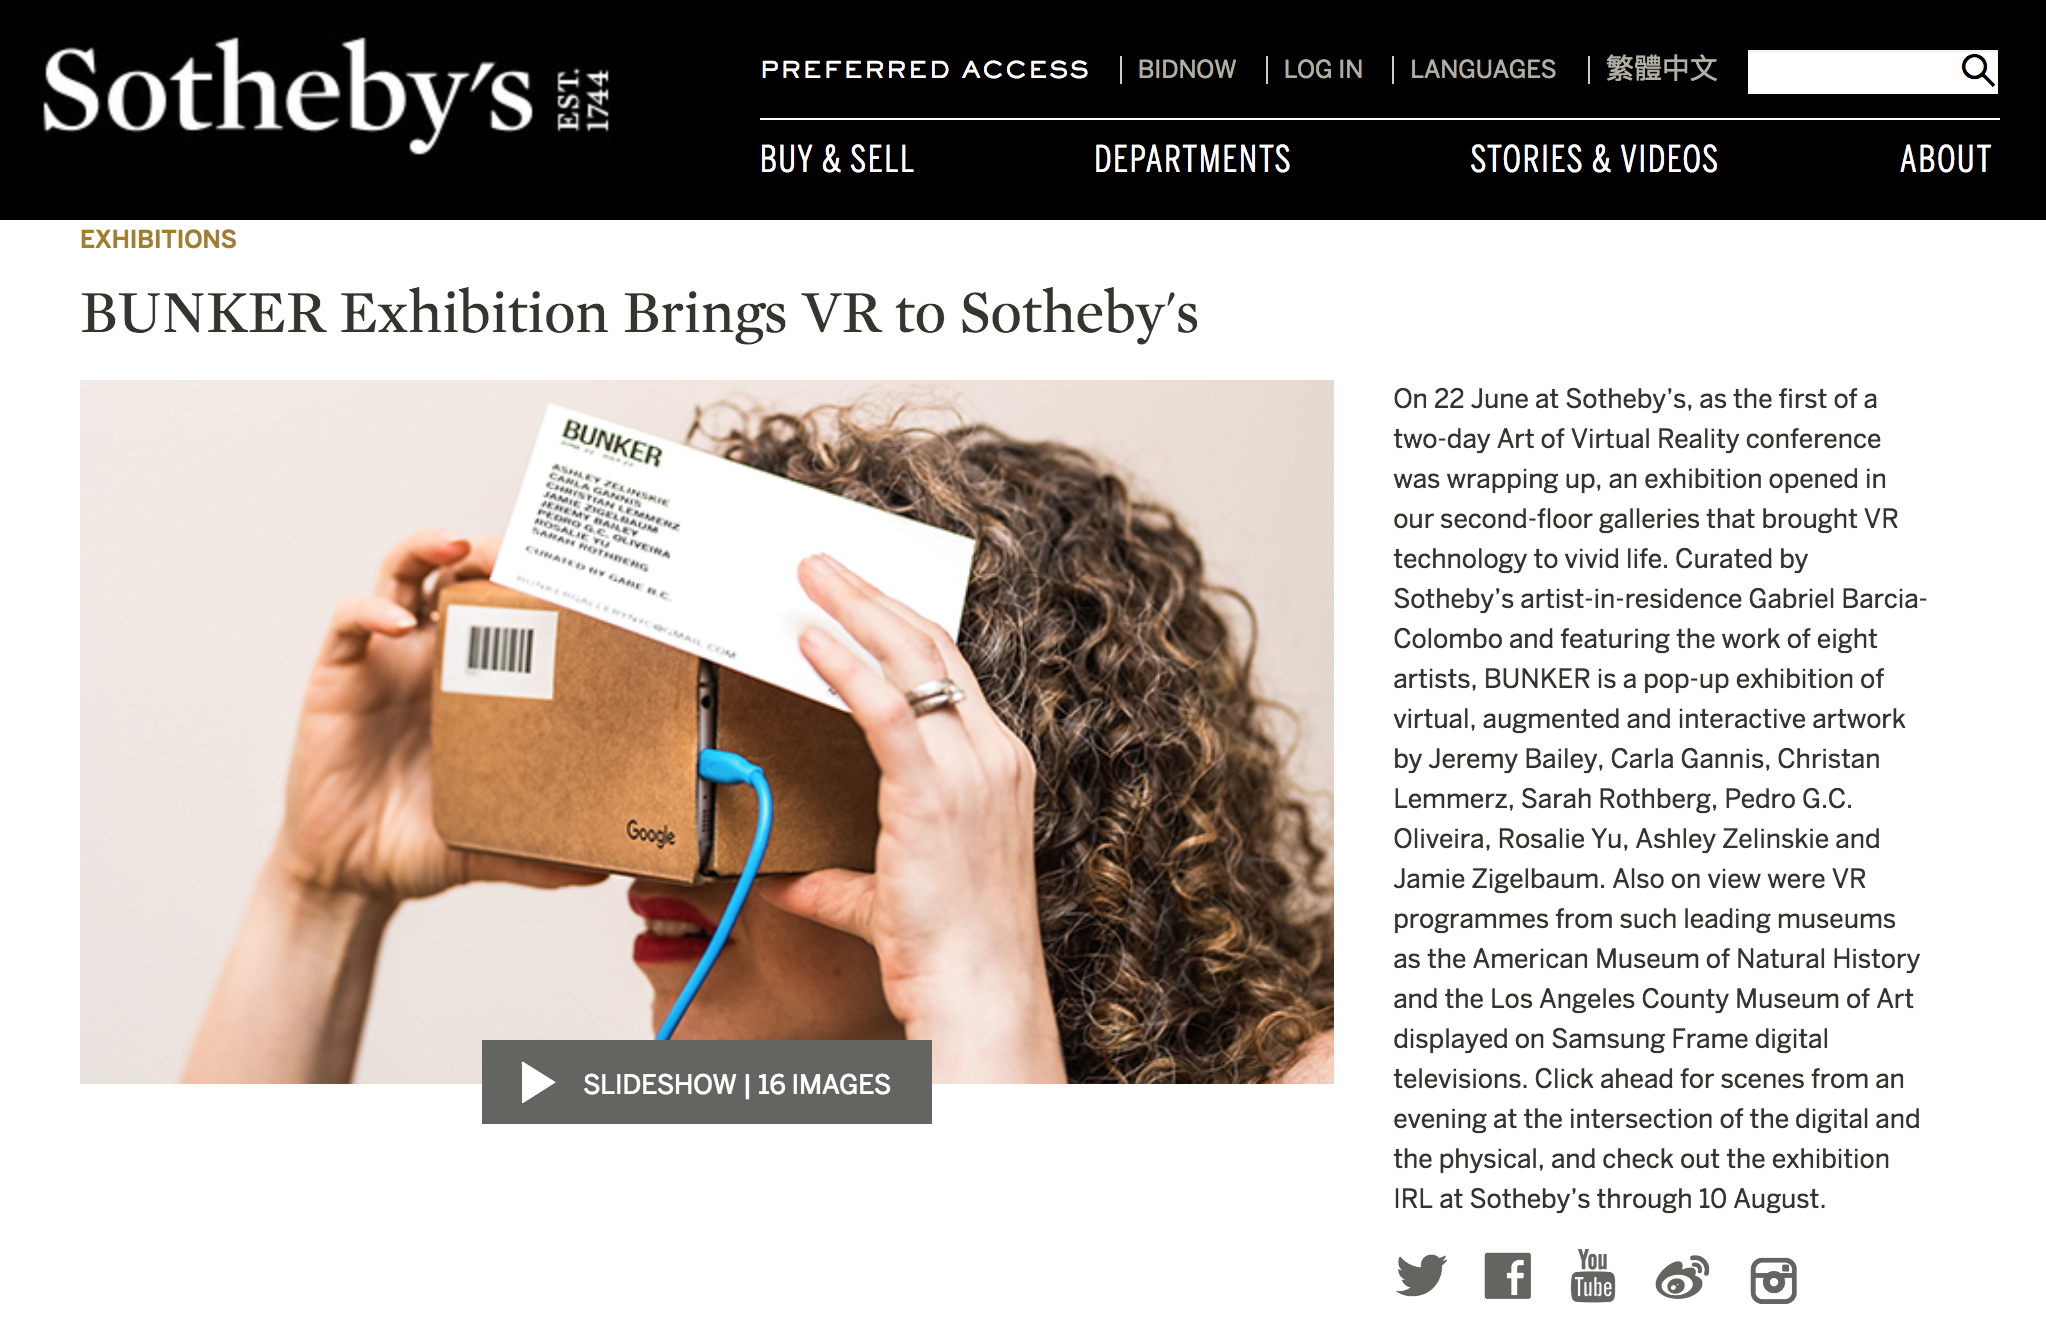 BUNKER Exhibition Brings VR to Sotheby's.png